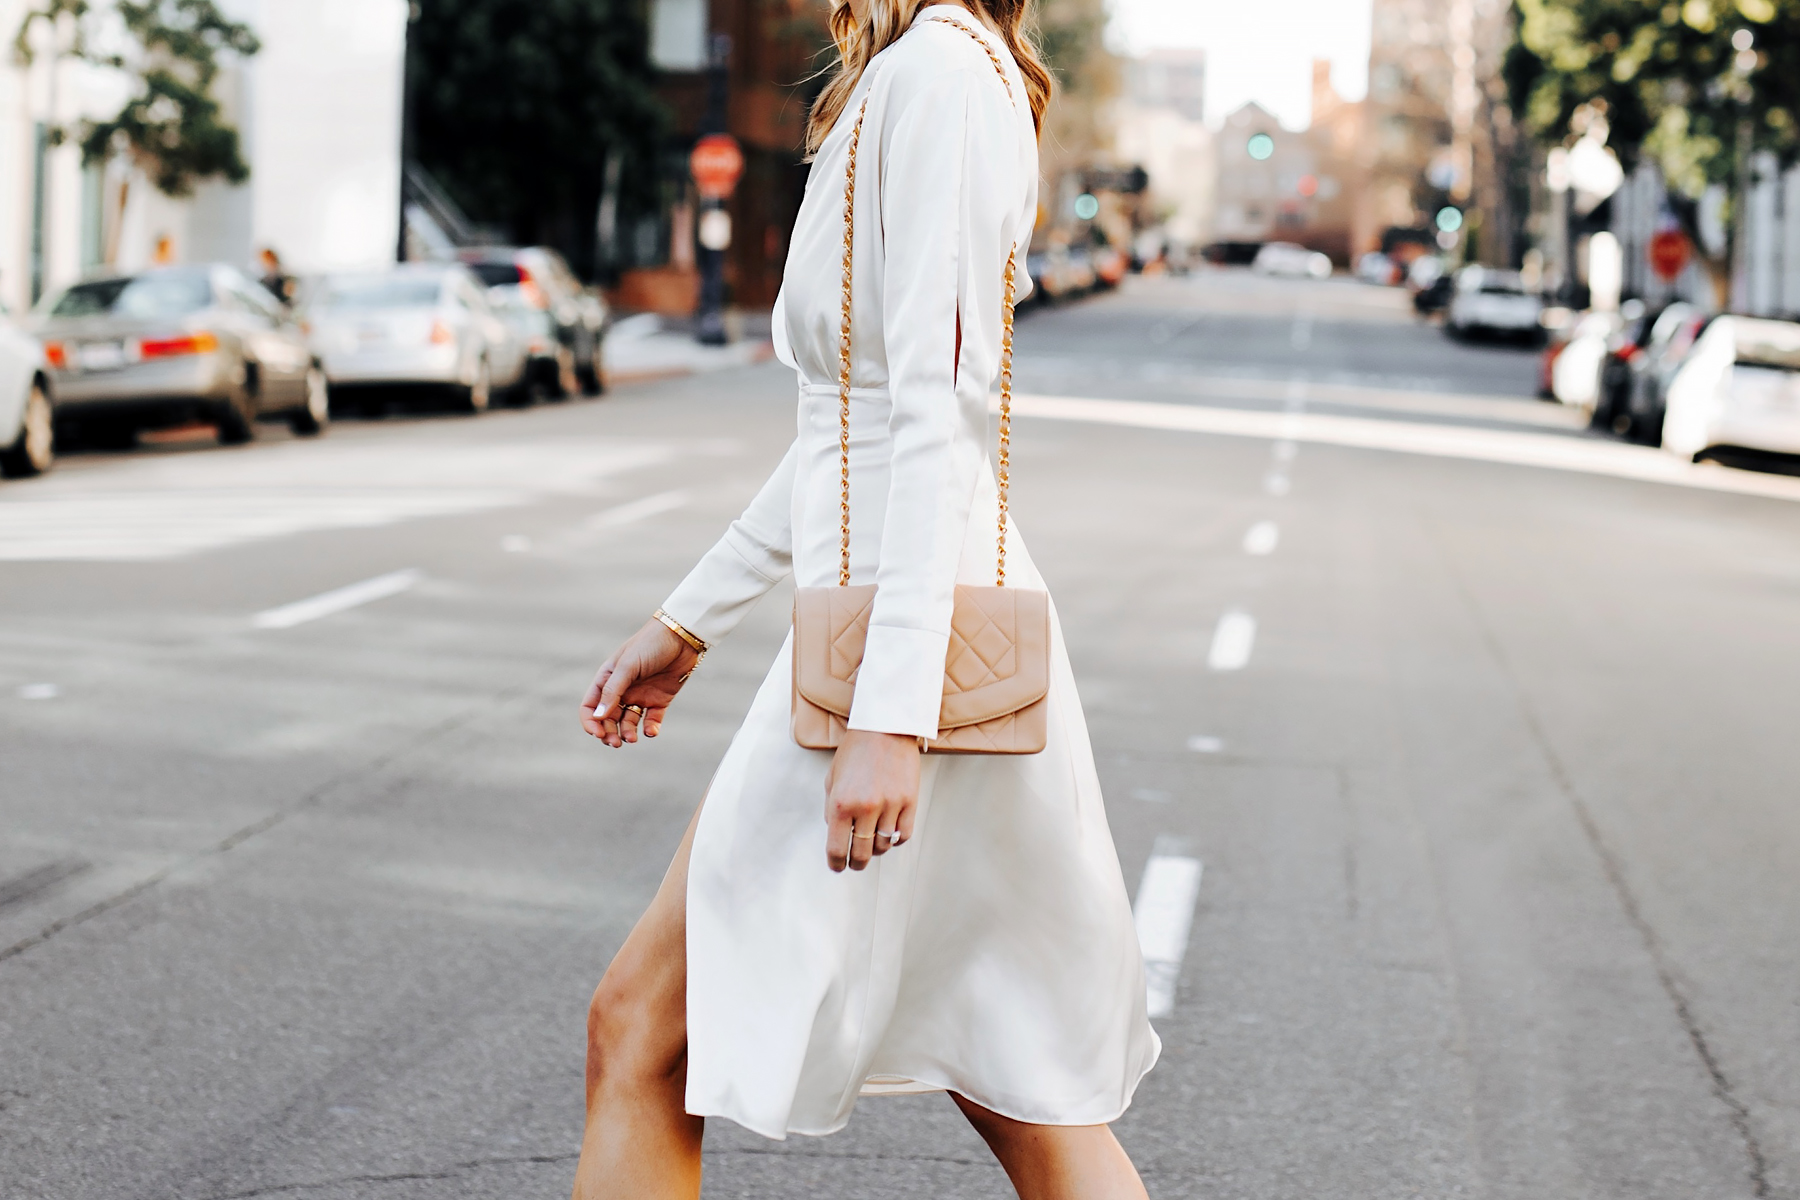 Woman Wearing Tommy Hilfiger White Wrap Dress Beige Handbag Fashion Jackson San Diego Fashion Blogger Street Style